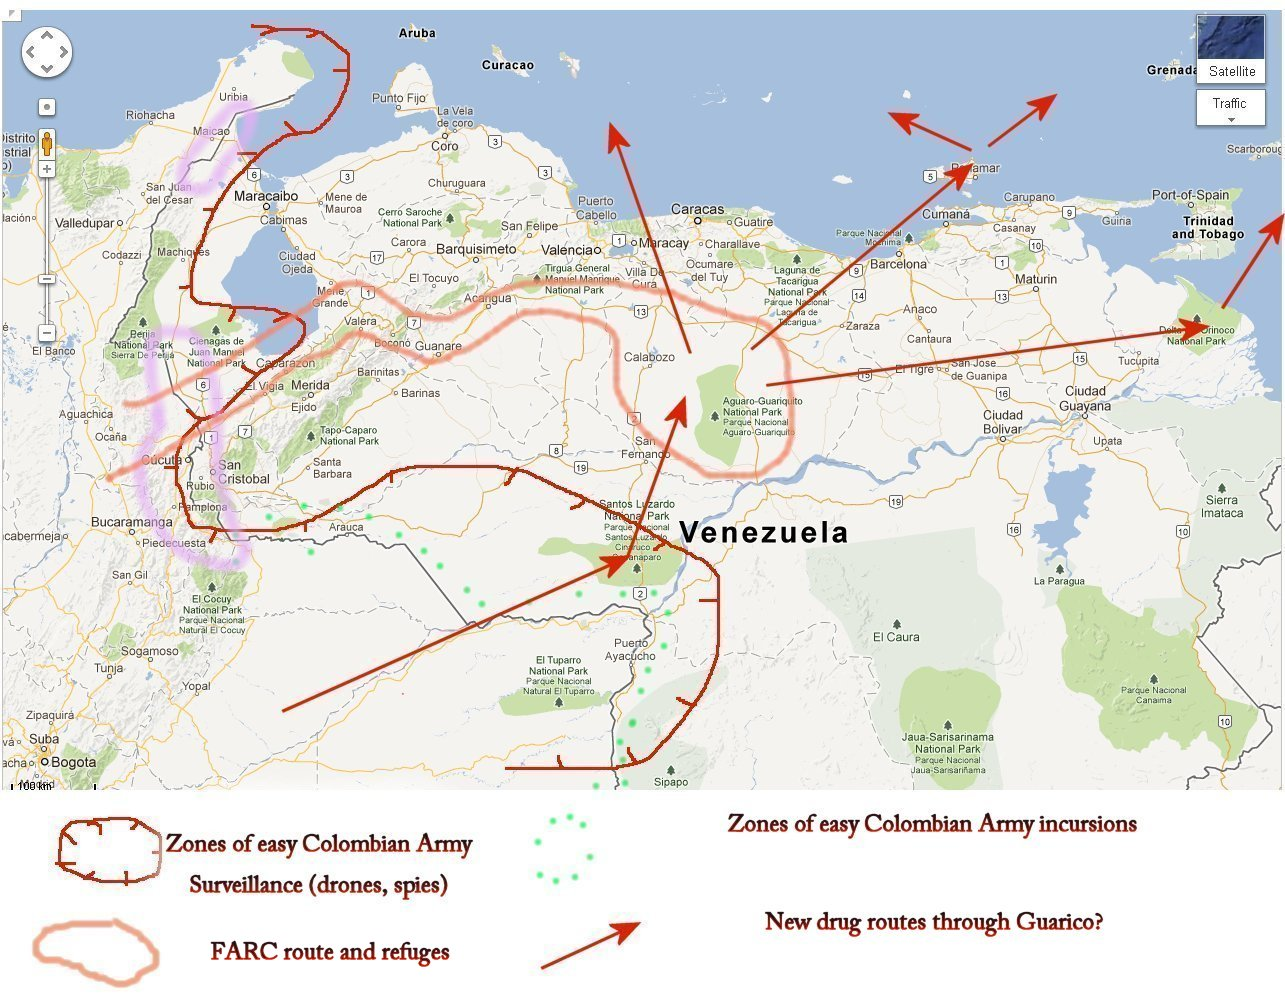 Venezuela News And Views The building up of a FARCdrug corridor in